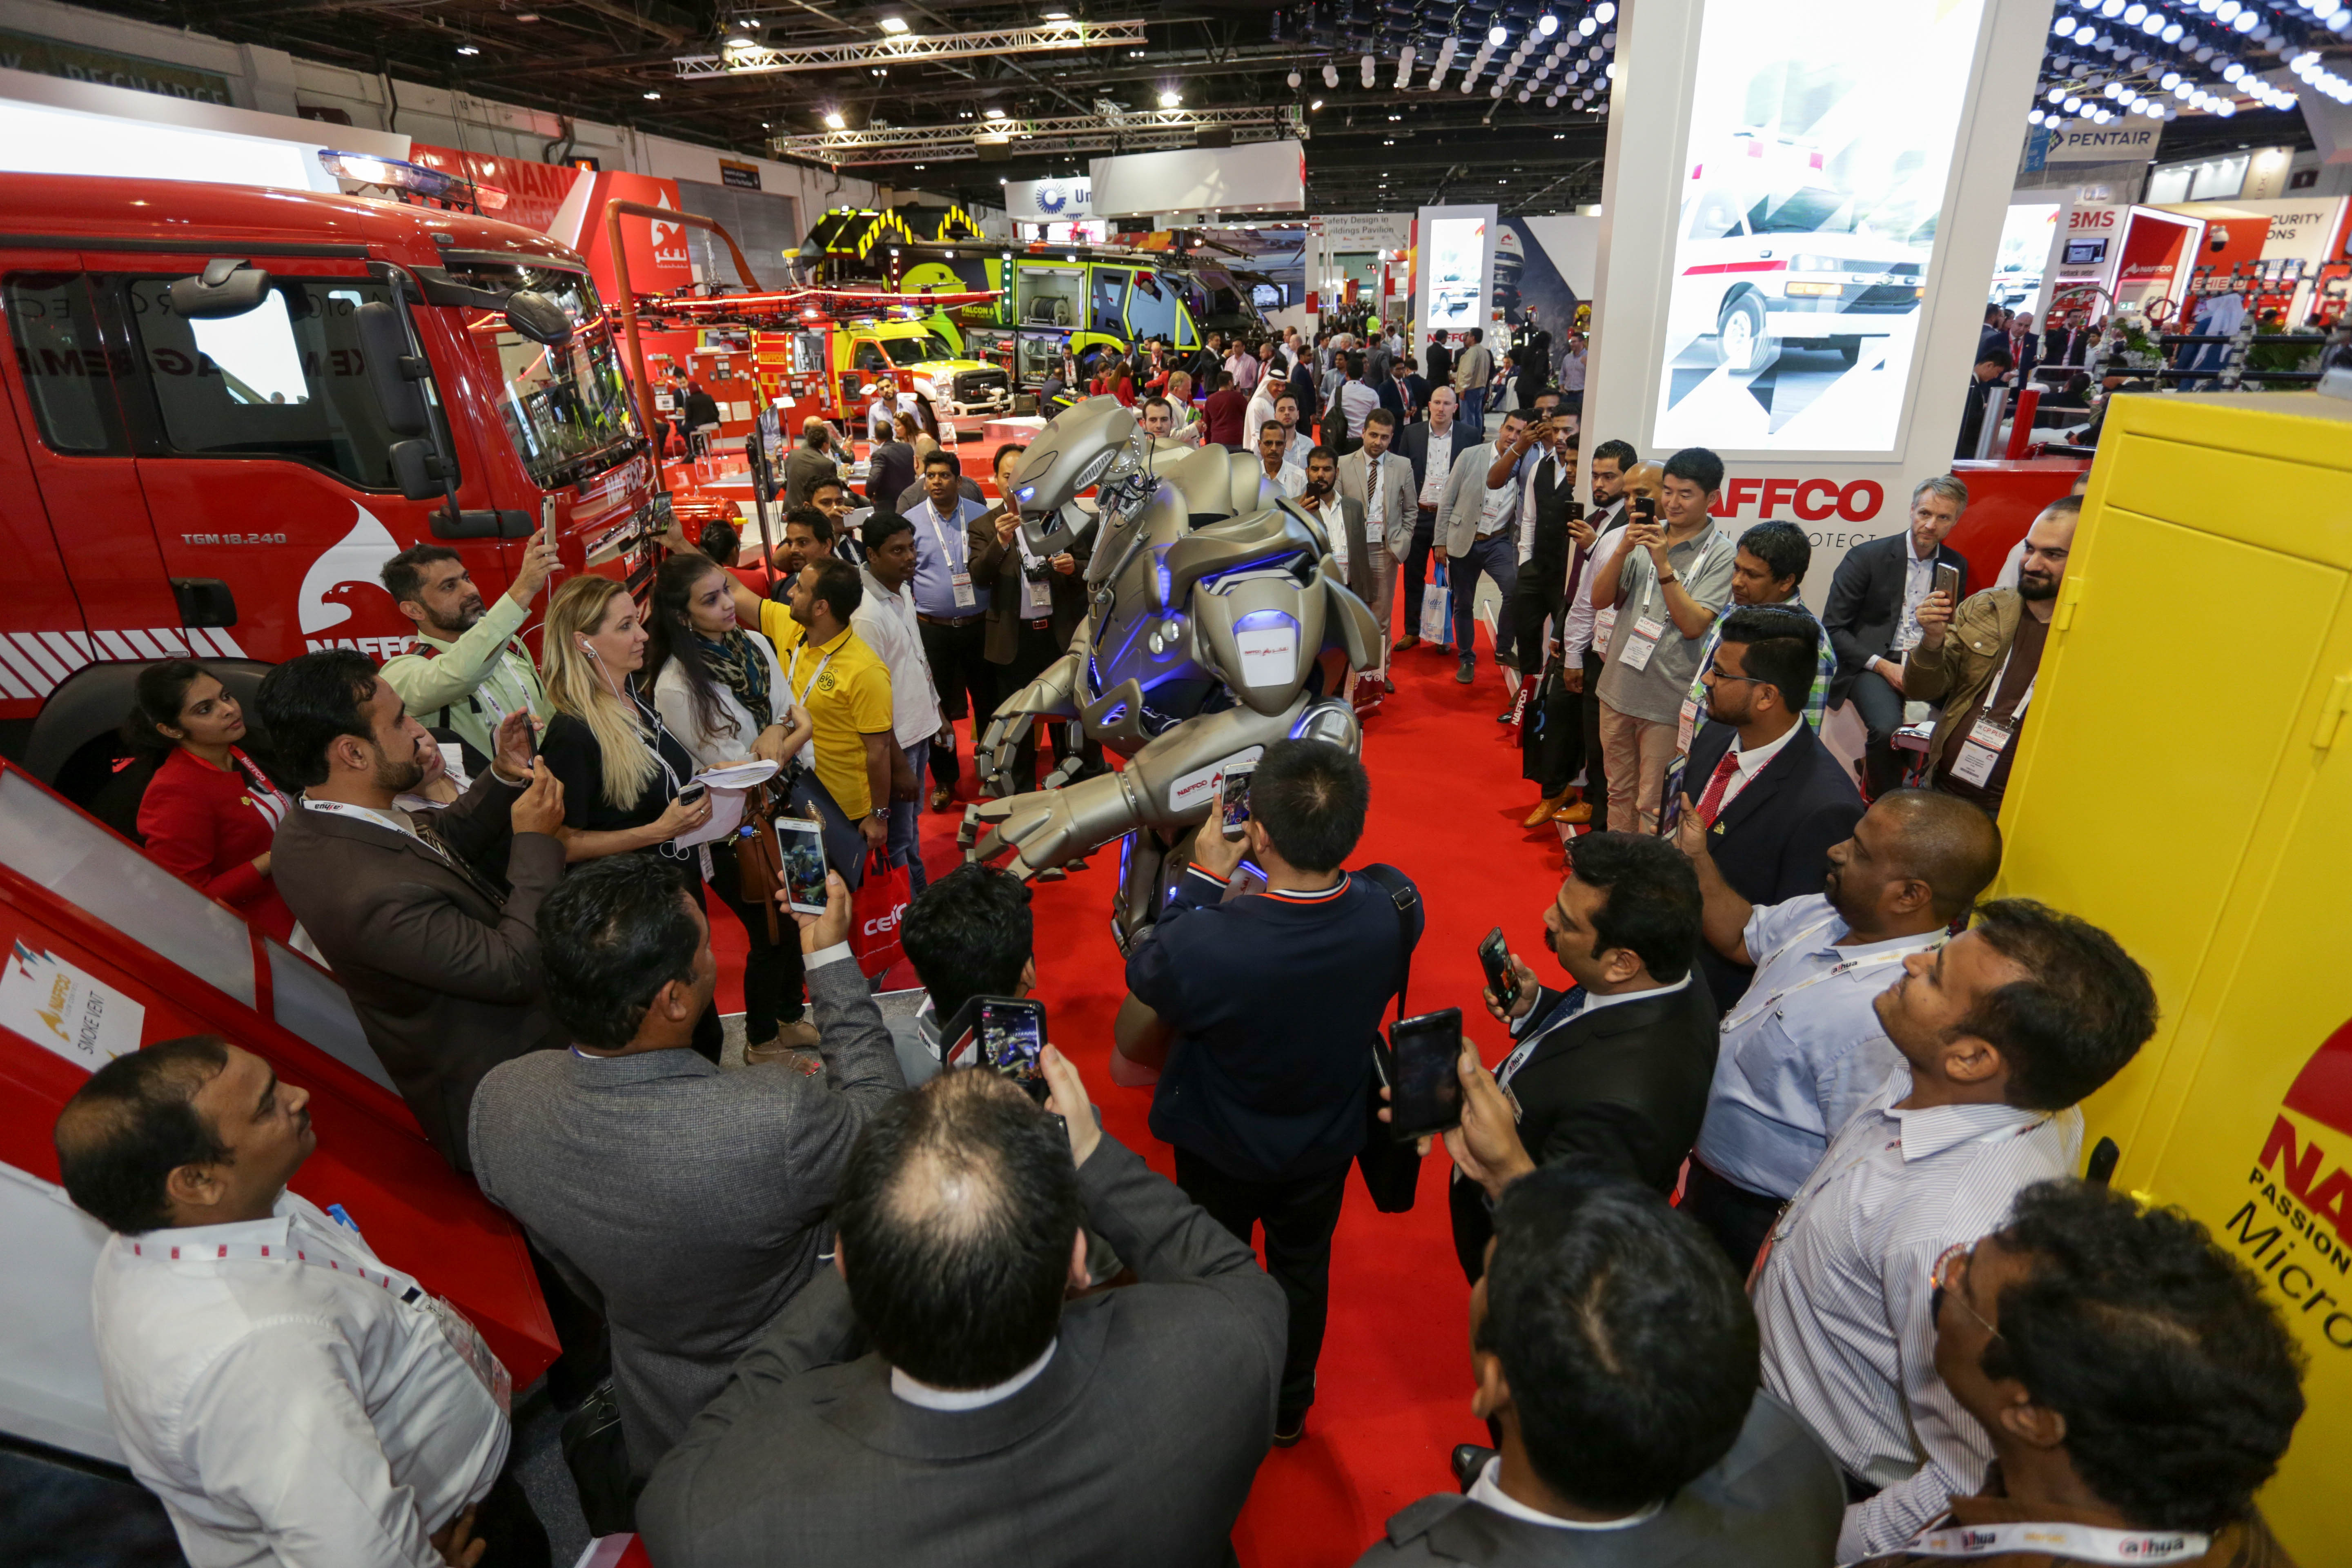 International visitors marvel at the latest technology to be seen at Intersec Dubai in January 2018